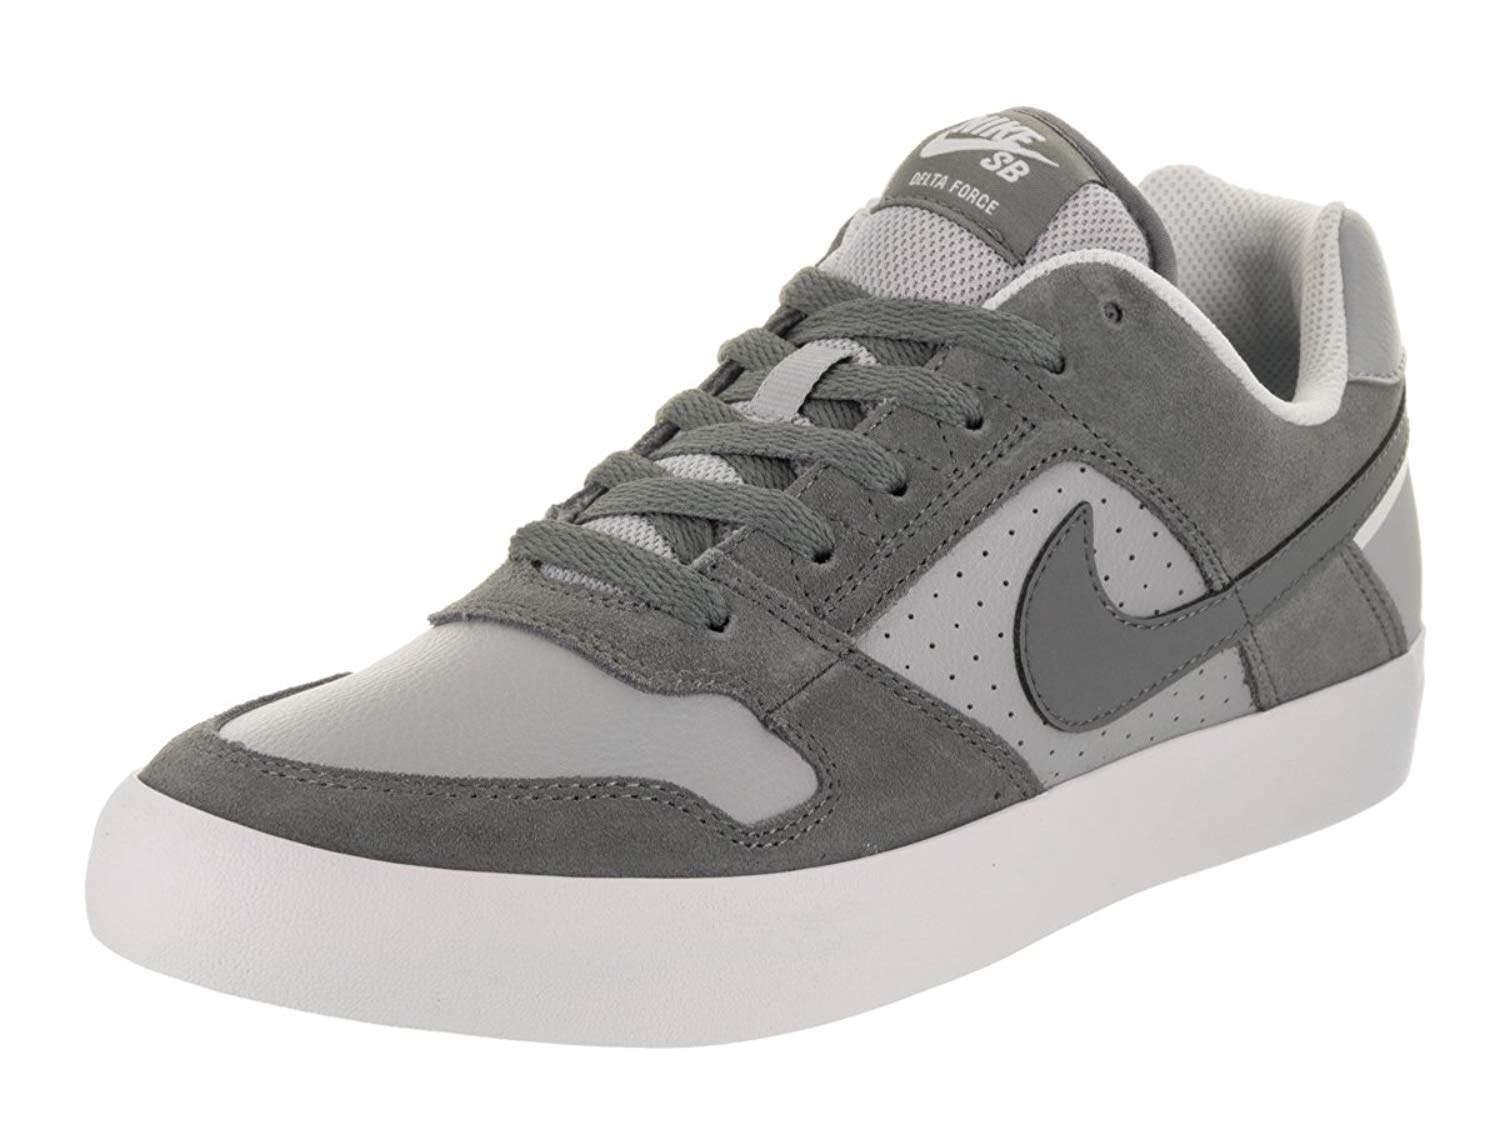 9eb7ab2c3f78 Get Quotations · NIKE Men s SB Delta Force Vulc Cool Grey Cool Grey Wolf  Grey Skate Shoe 10